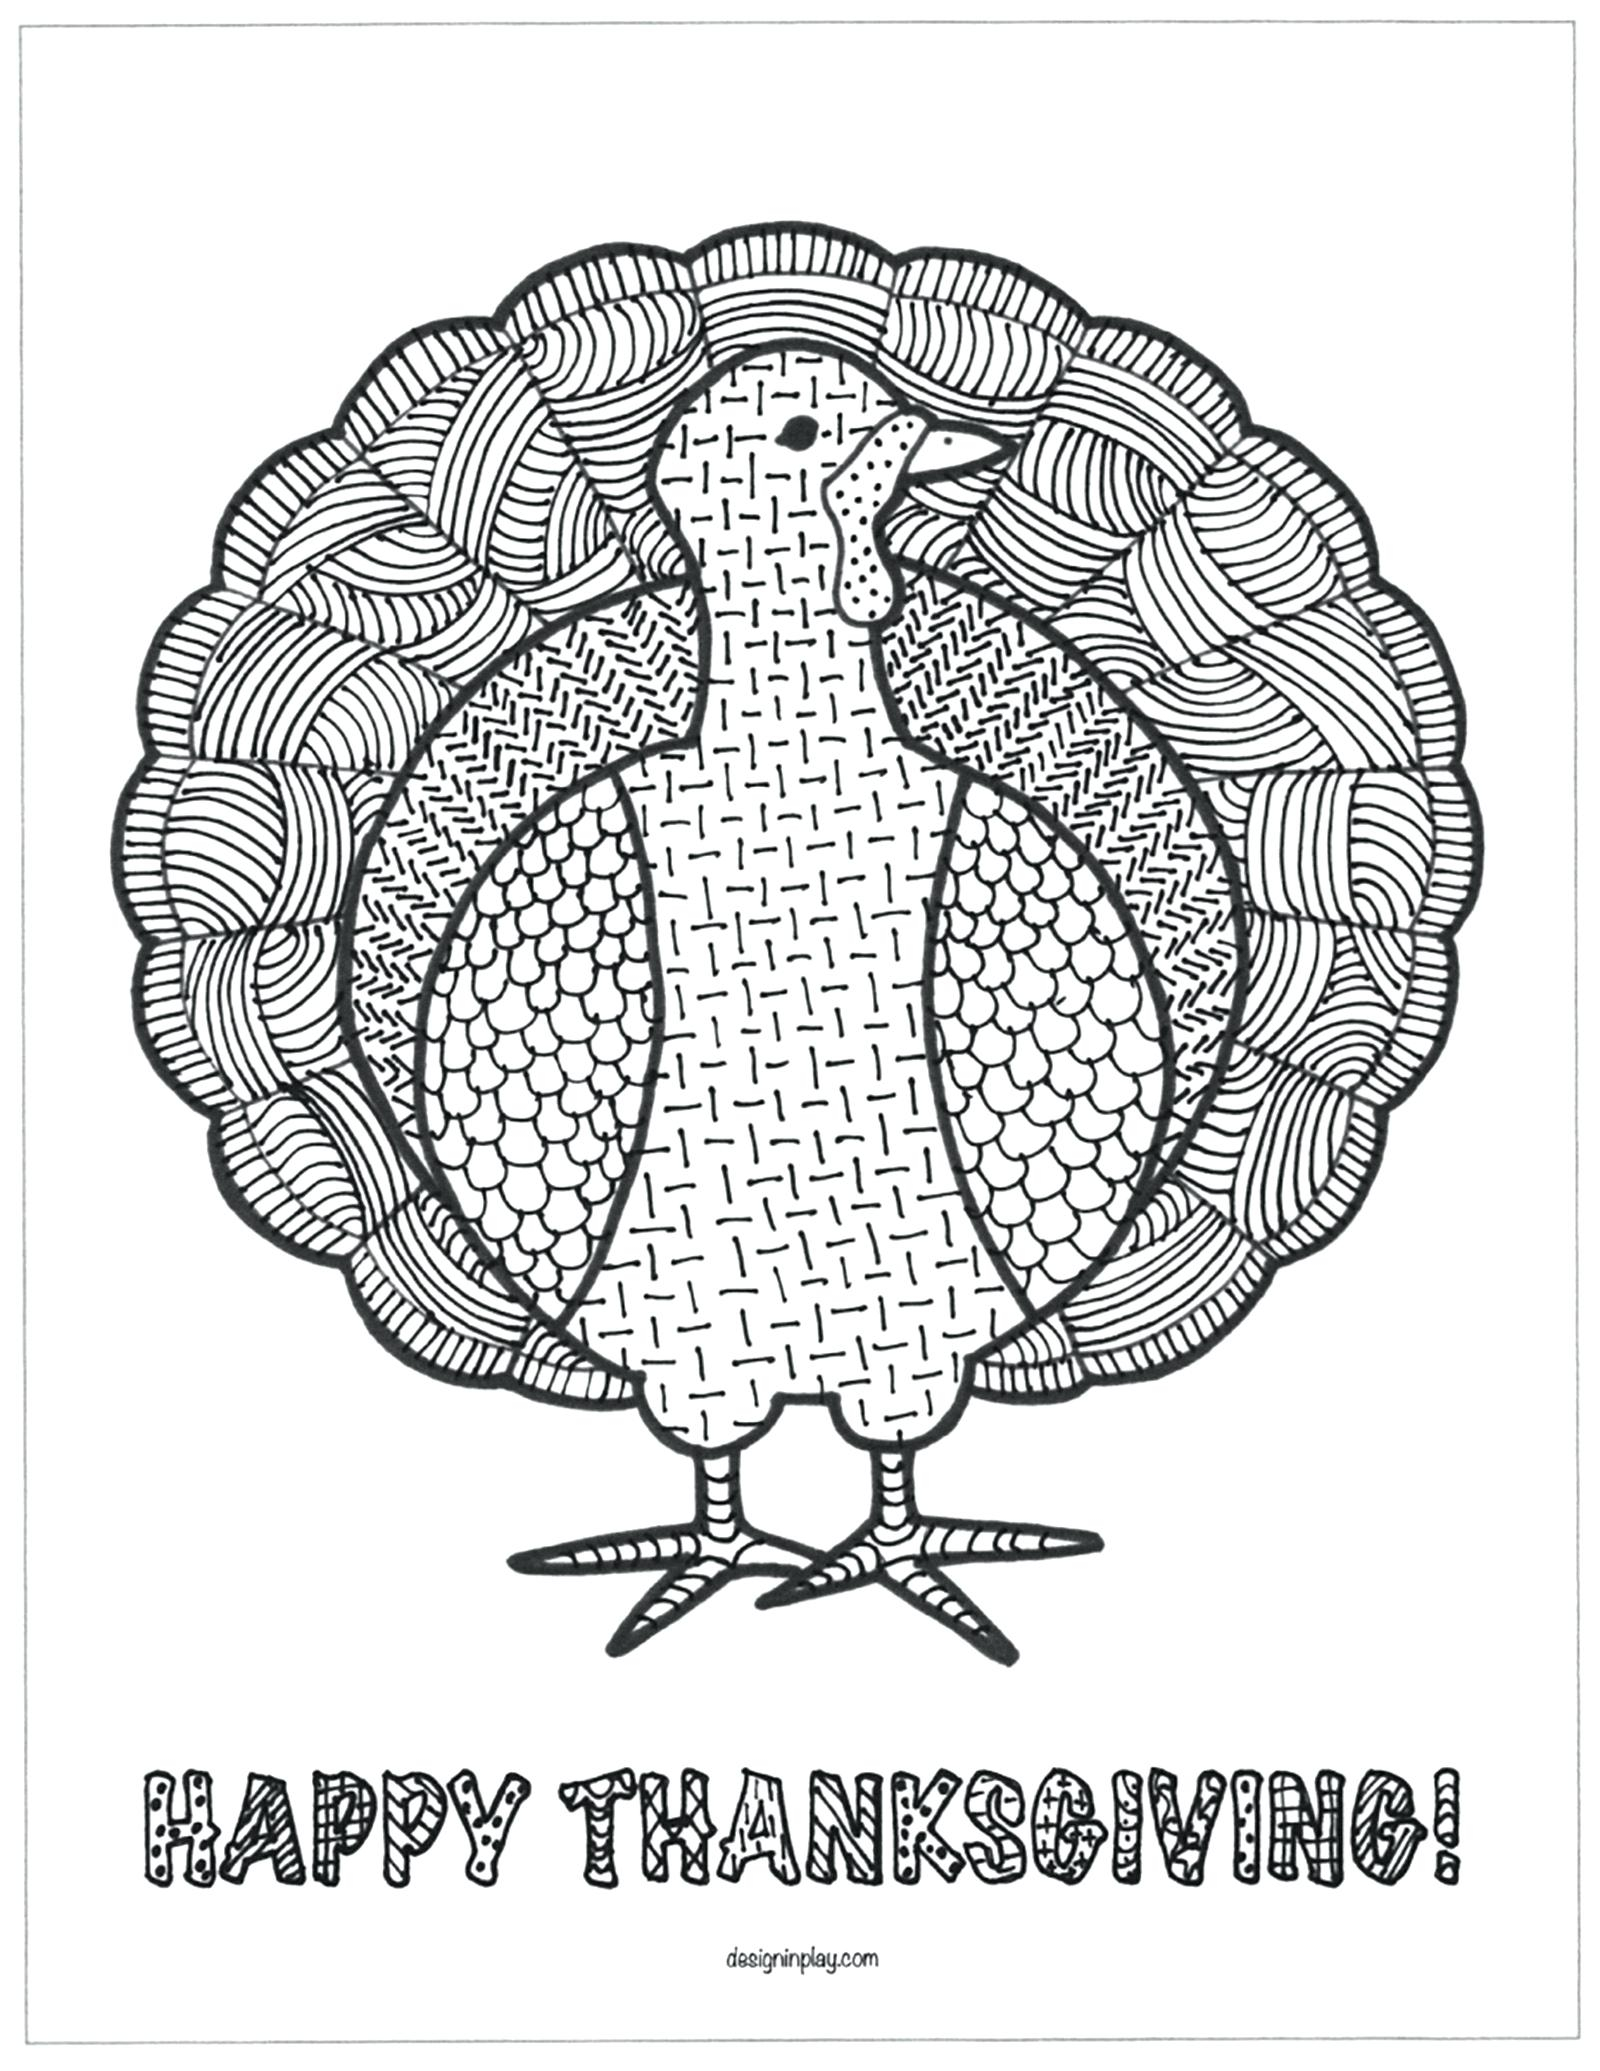 Thanksgiving Day Coloring Pages Free Turkey Coloring Sheet Turkey Coloring Sheet Free Mislatinasclub